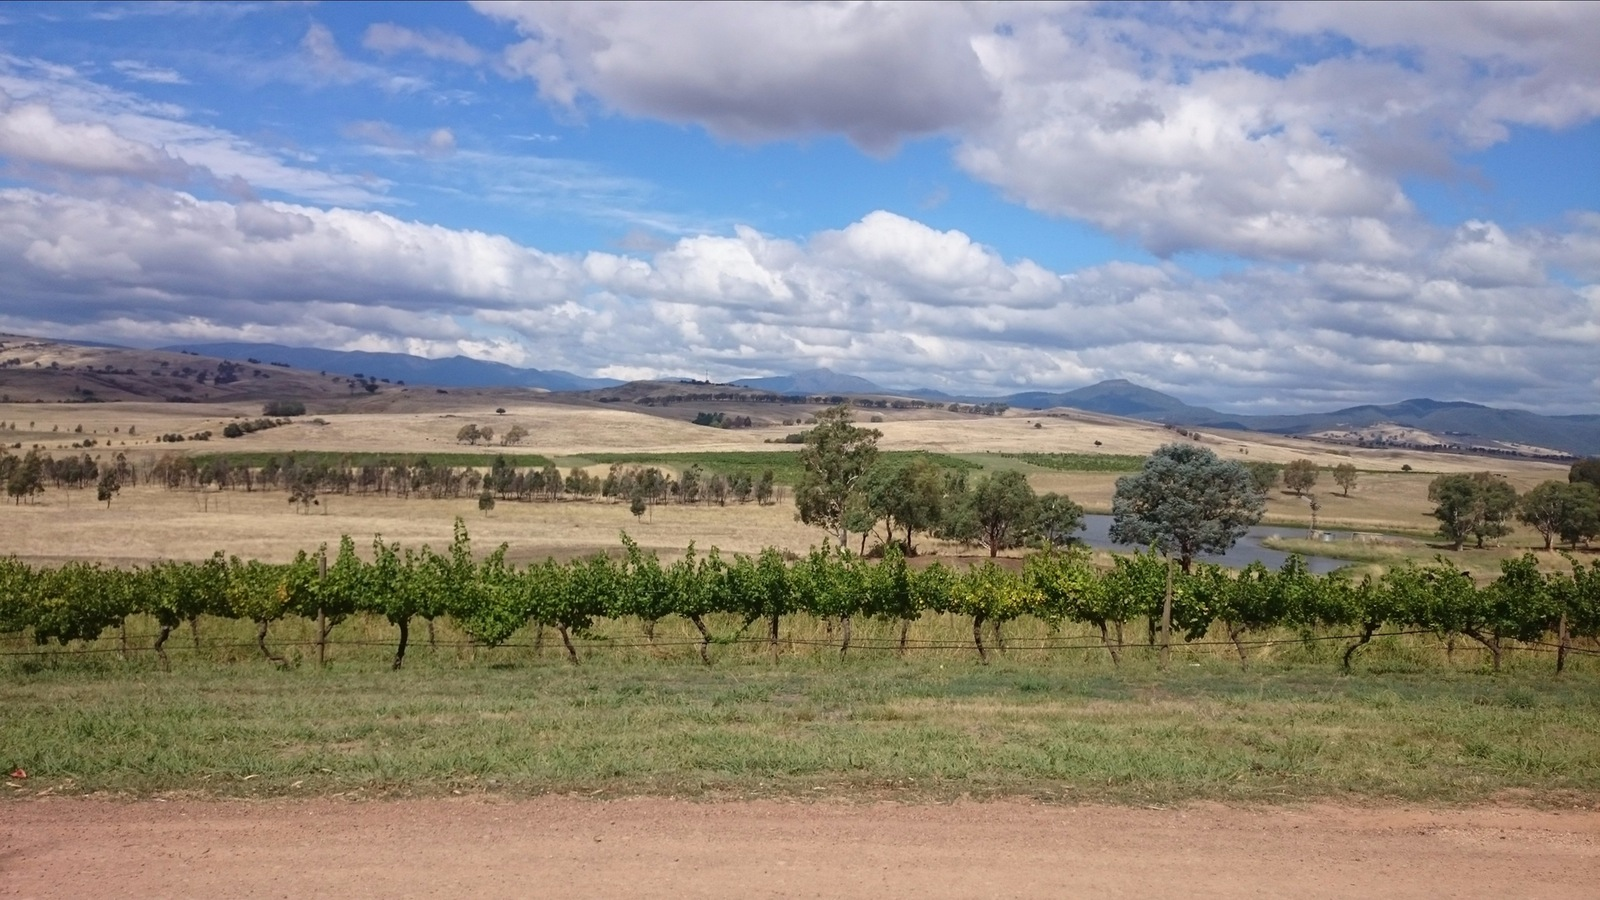 View from Delatite Winery